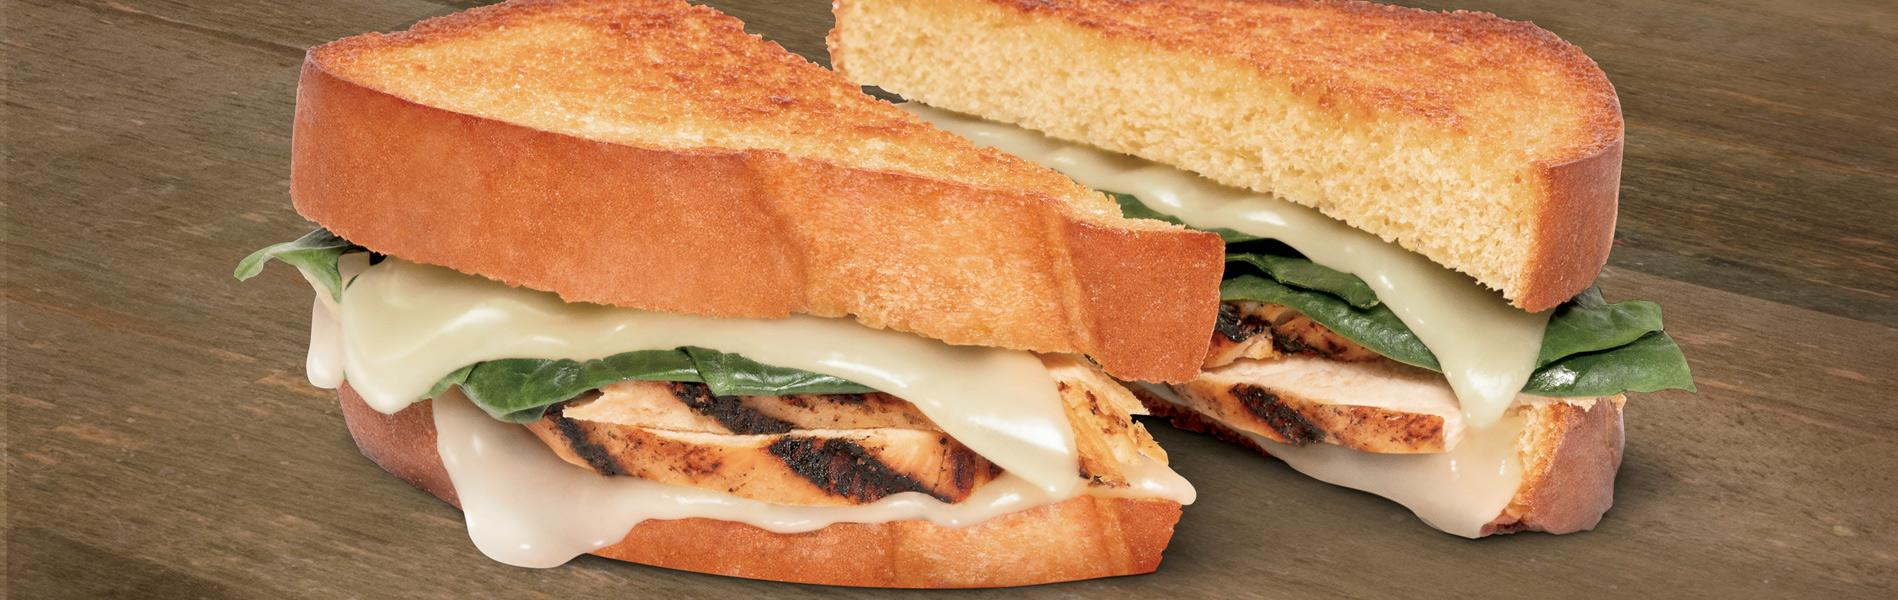 Grilled Cheese made with grilled chicken, mozzarella cheese and spinach, using Sara Lee® Artesano™ Potato Bread